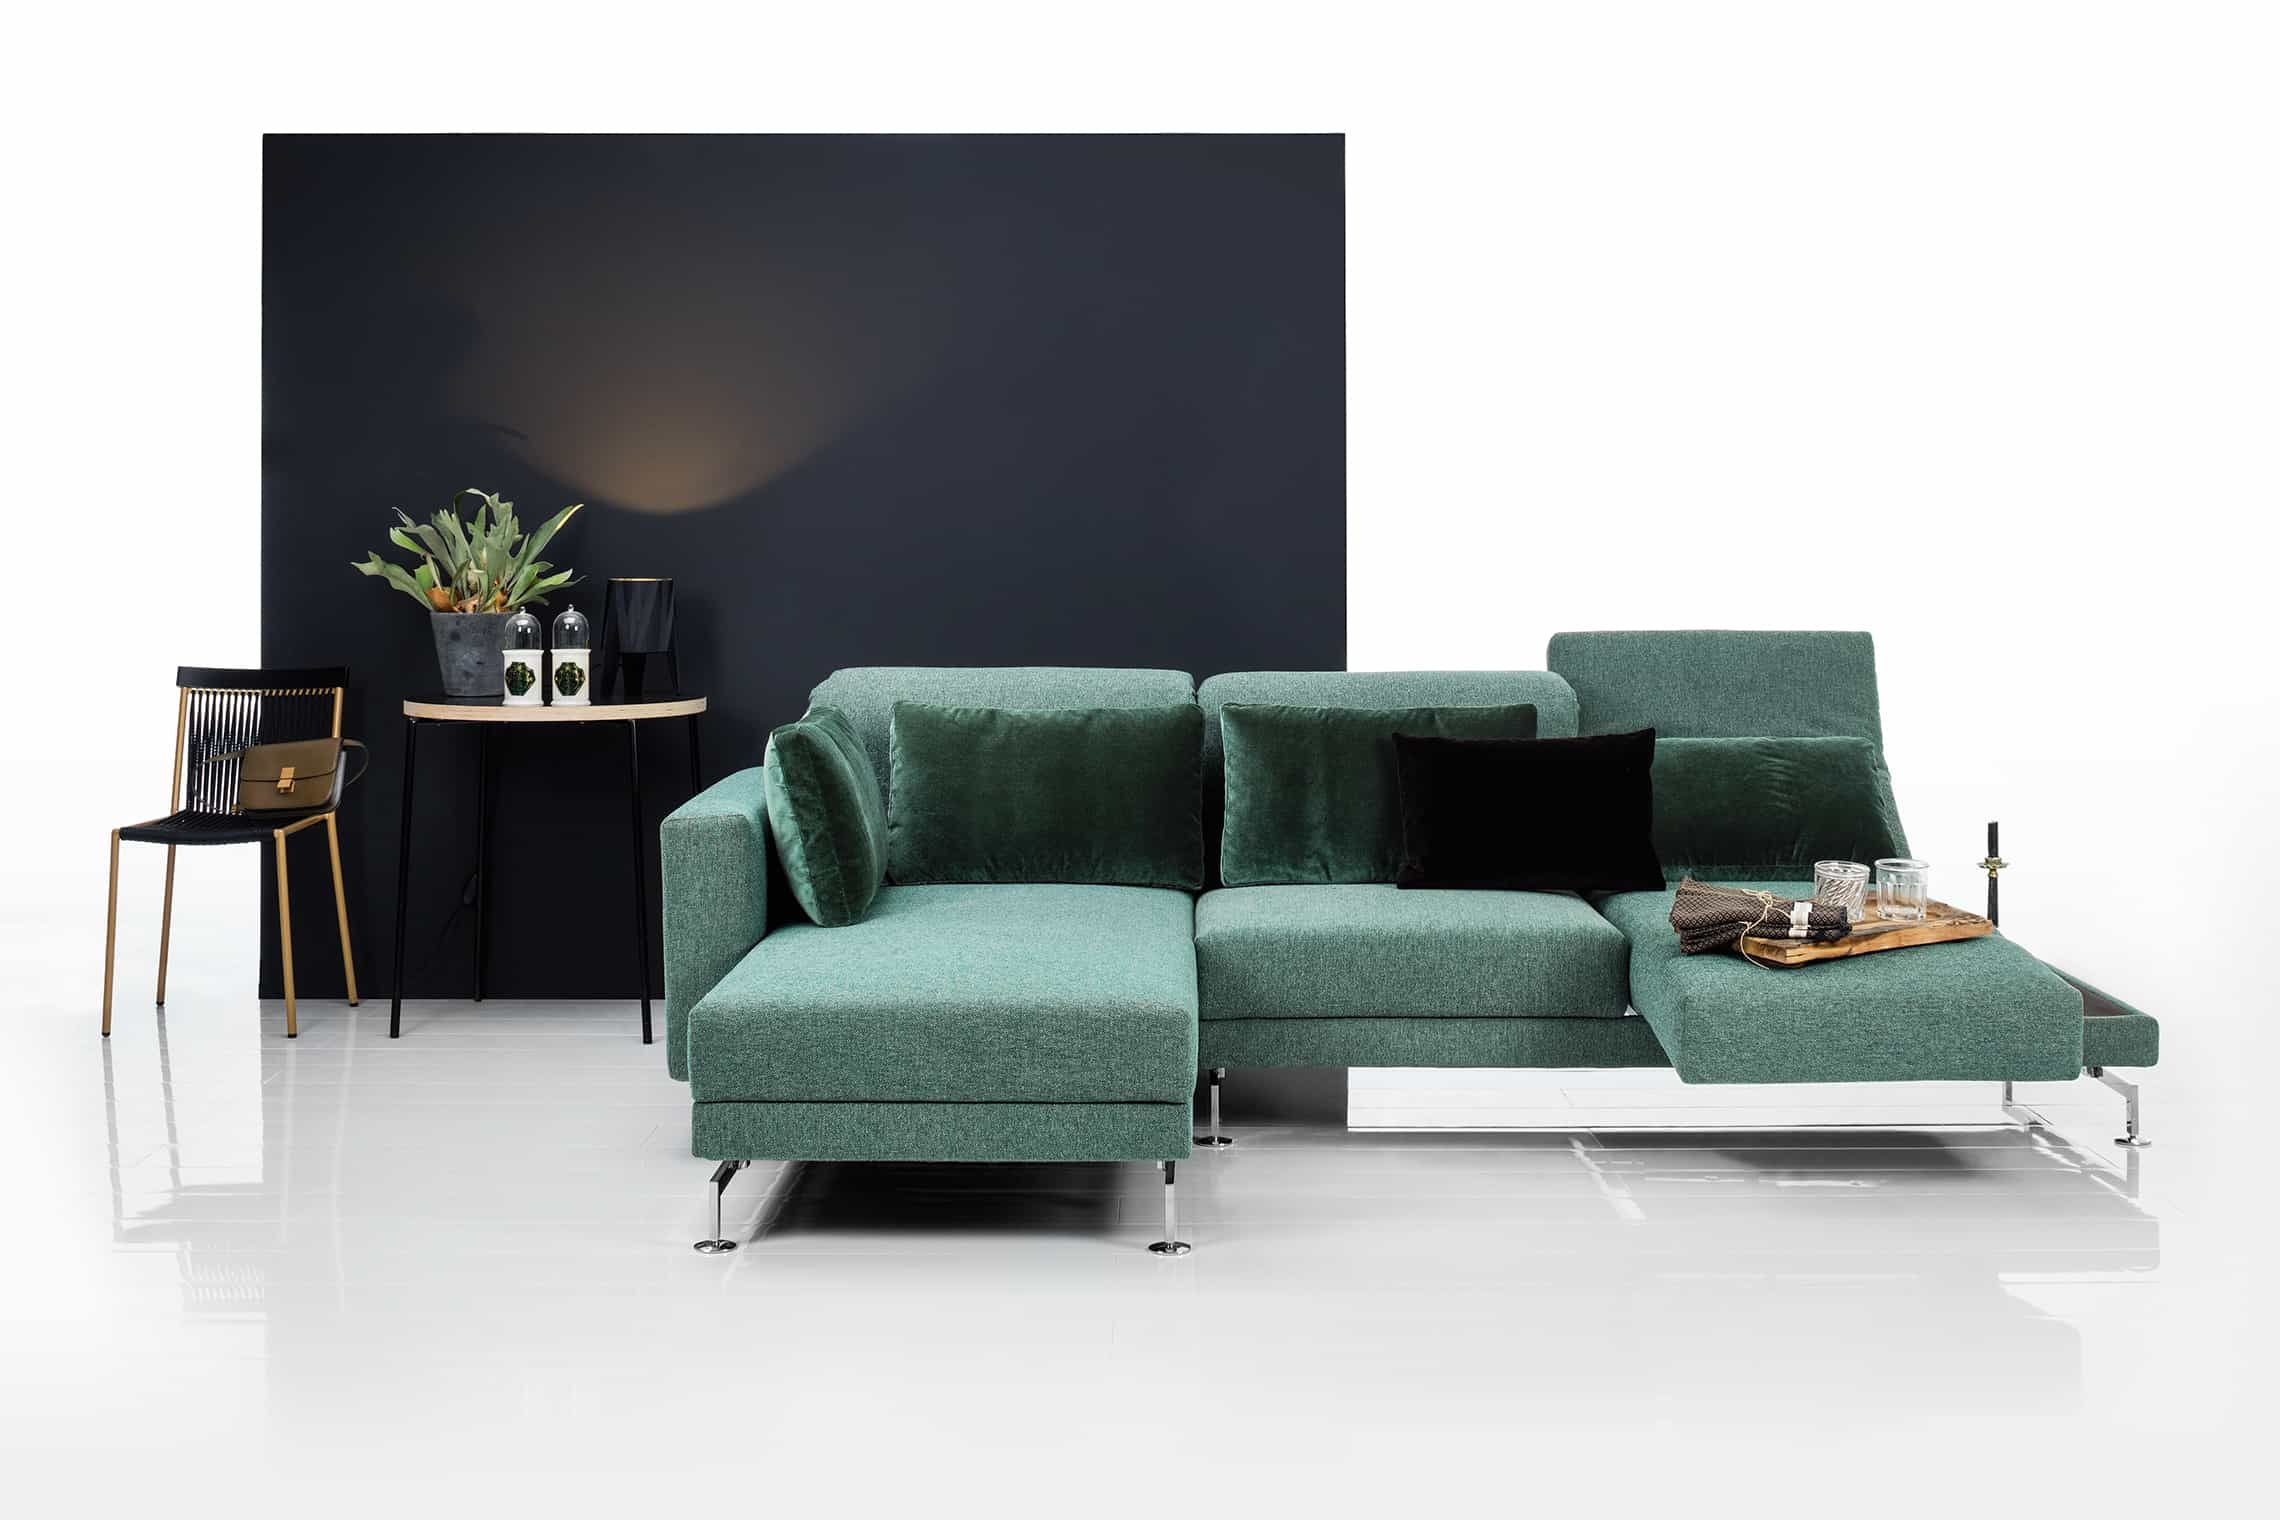 Moule The Original Since 2003 Sofa Kolonialstil Big Sofa Mit Schlaffunktion Wohnen